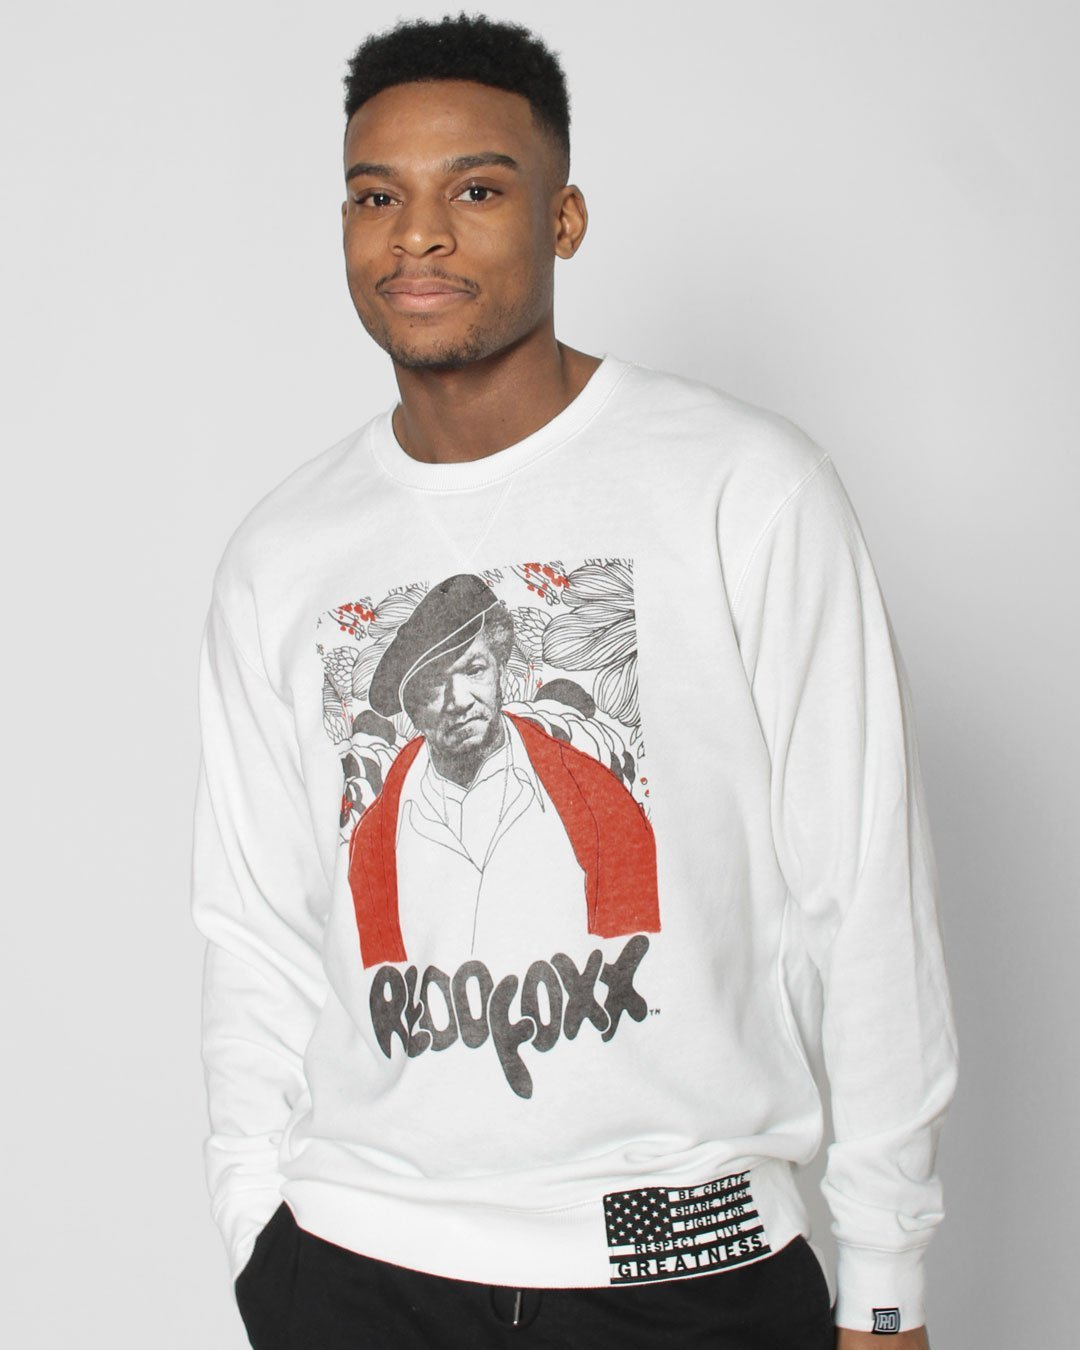 BHT - Redd Foxx Cover Photo Sweatshirt - Roots of Inc dba Roots of Fight